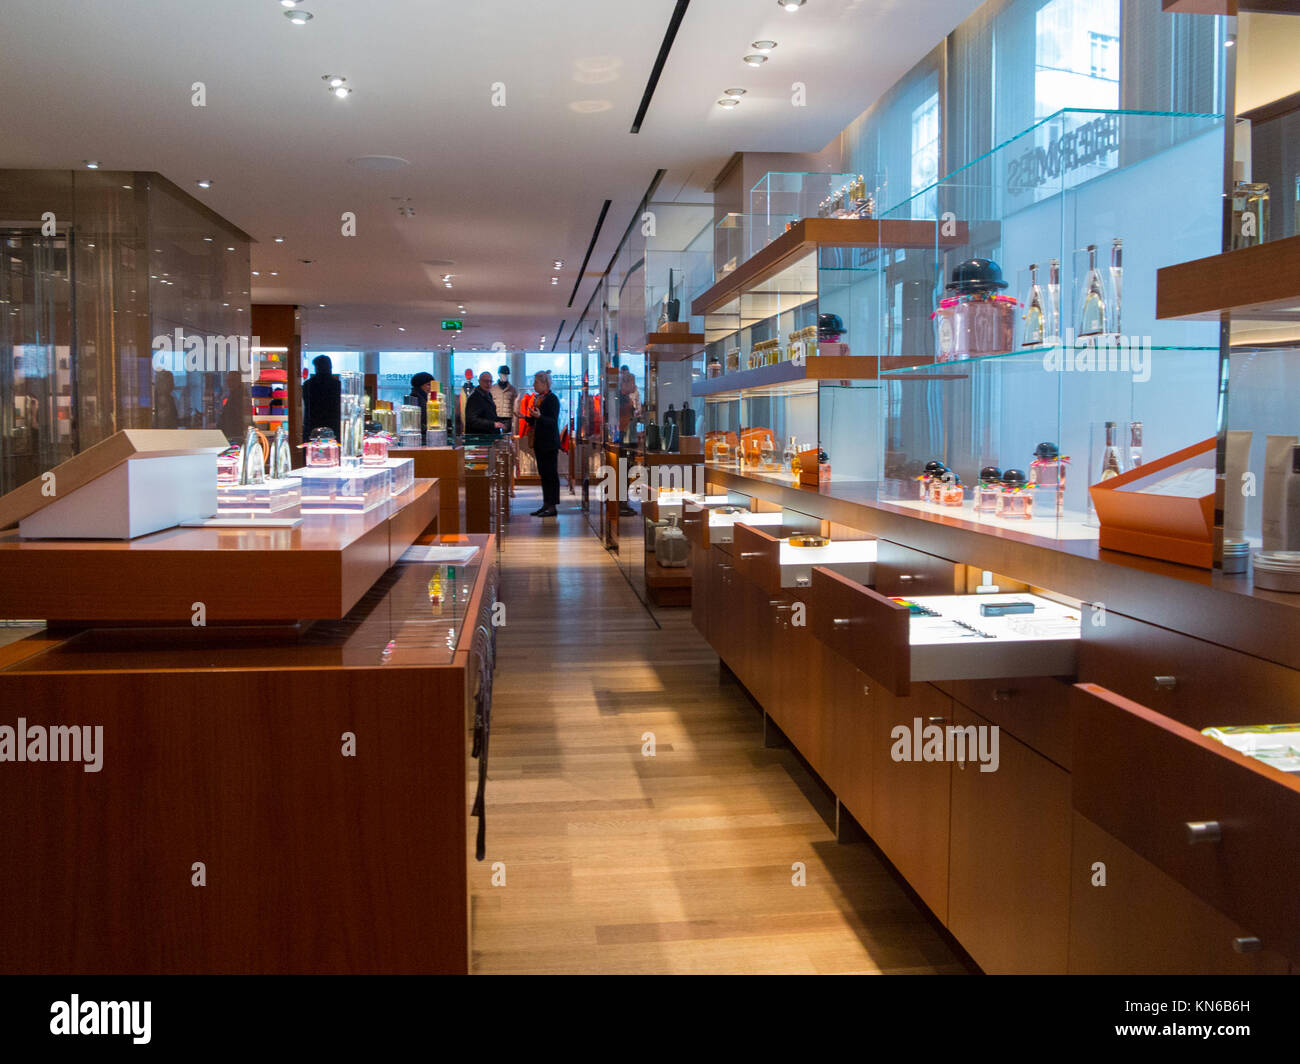 The interior of the Hermes store i n upmarket Bond Street, London - Stock Image